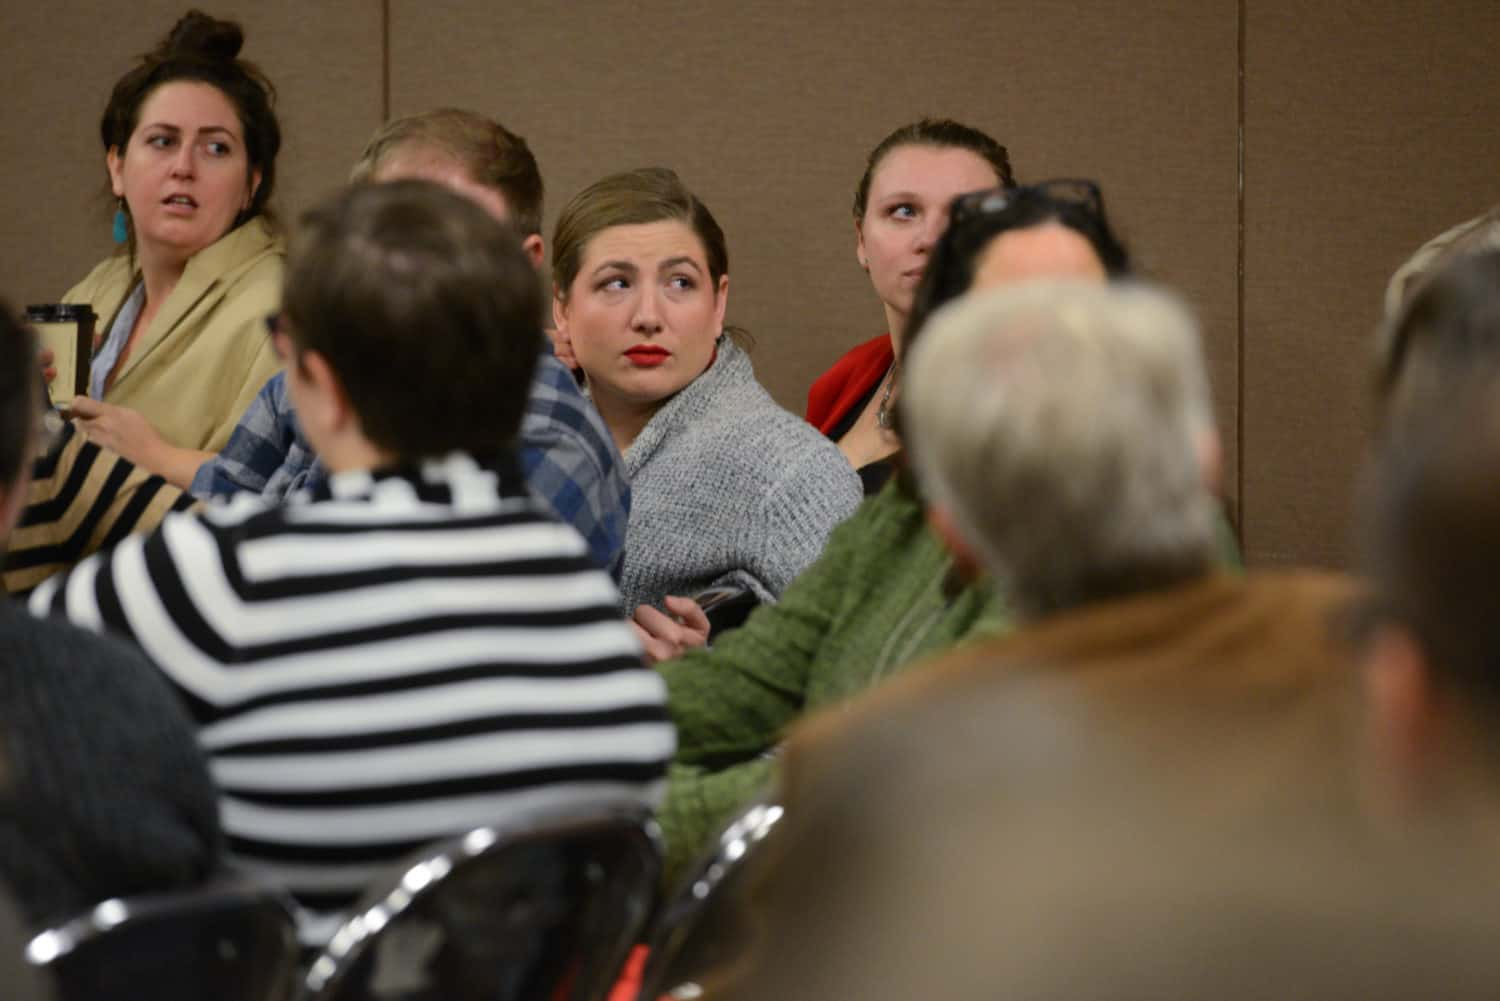 Audience members turn around to face a speaker in a conference panel audience